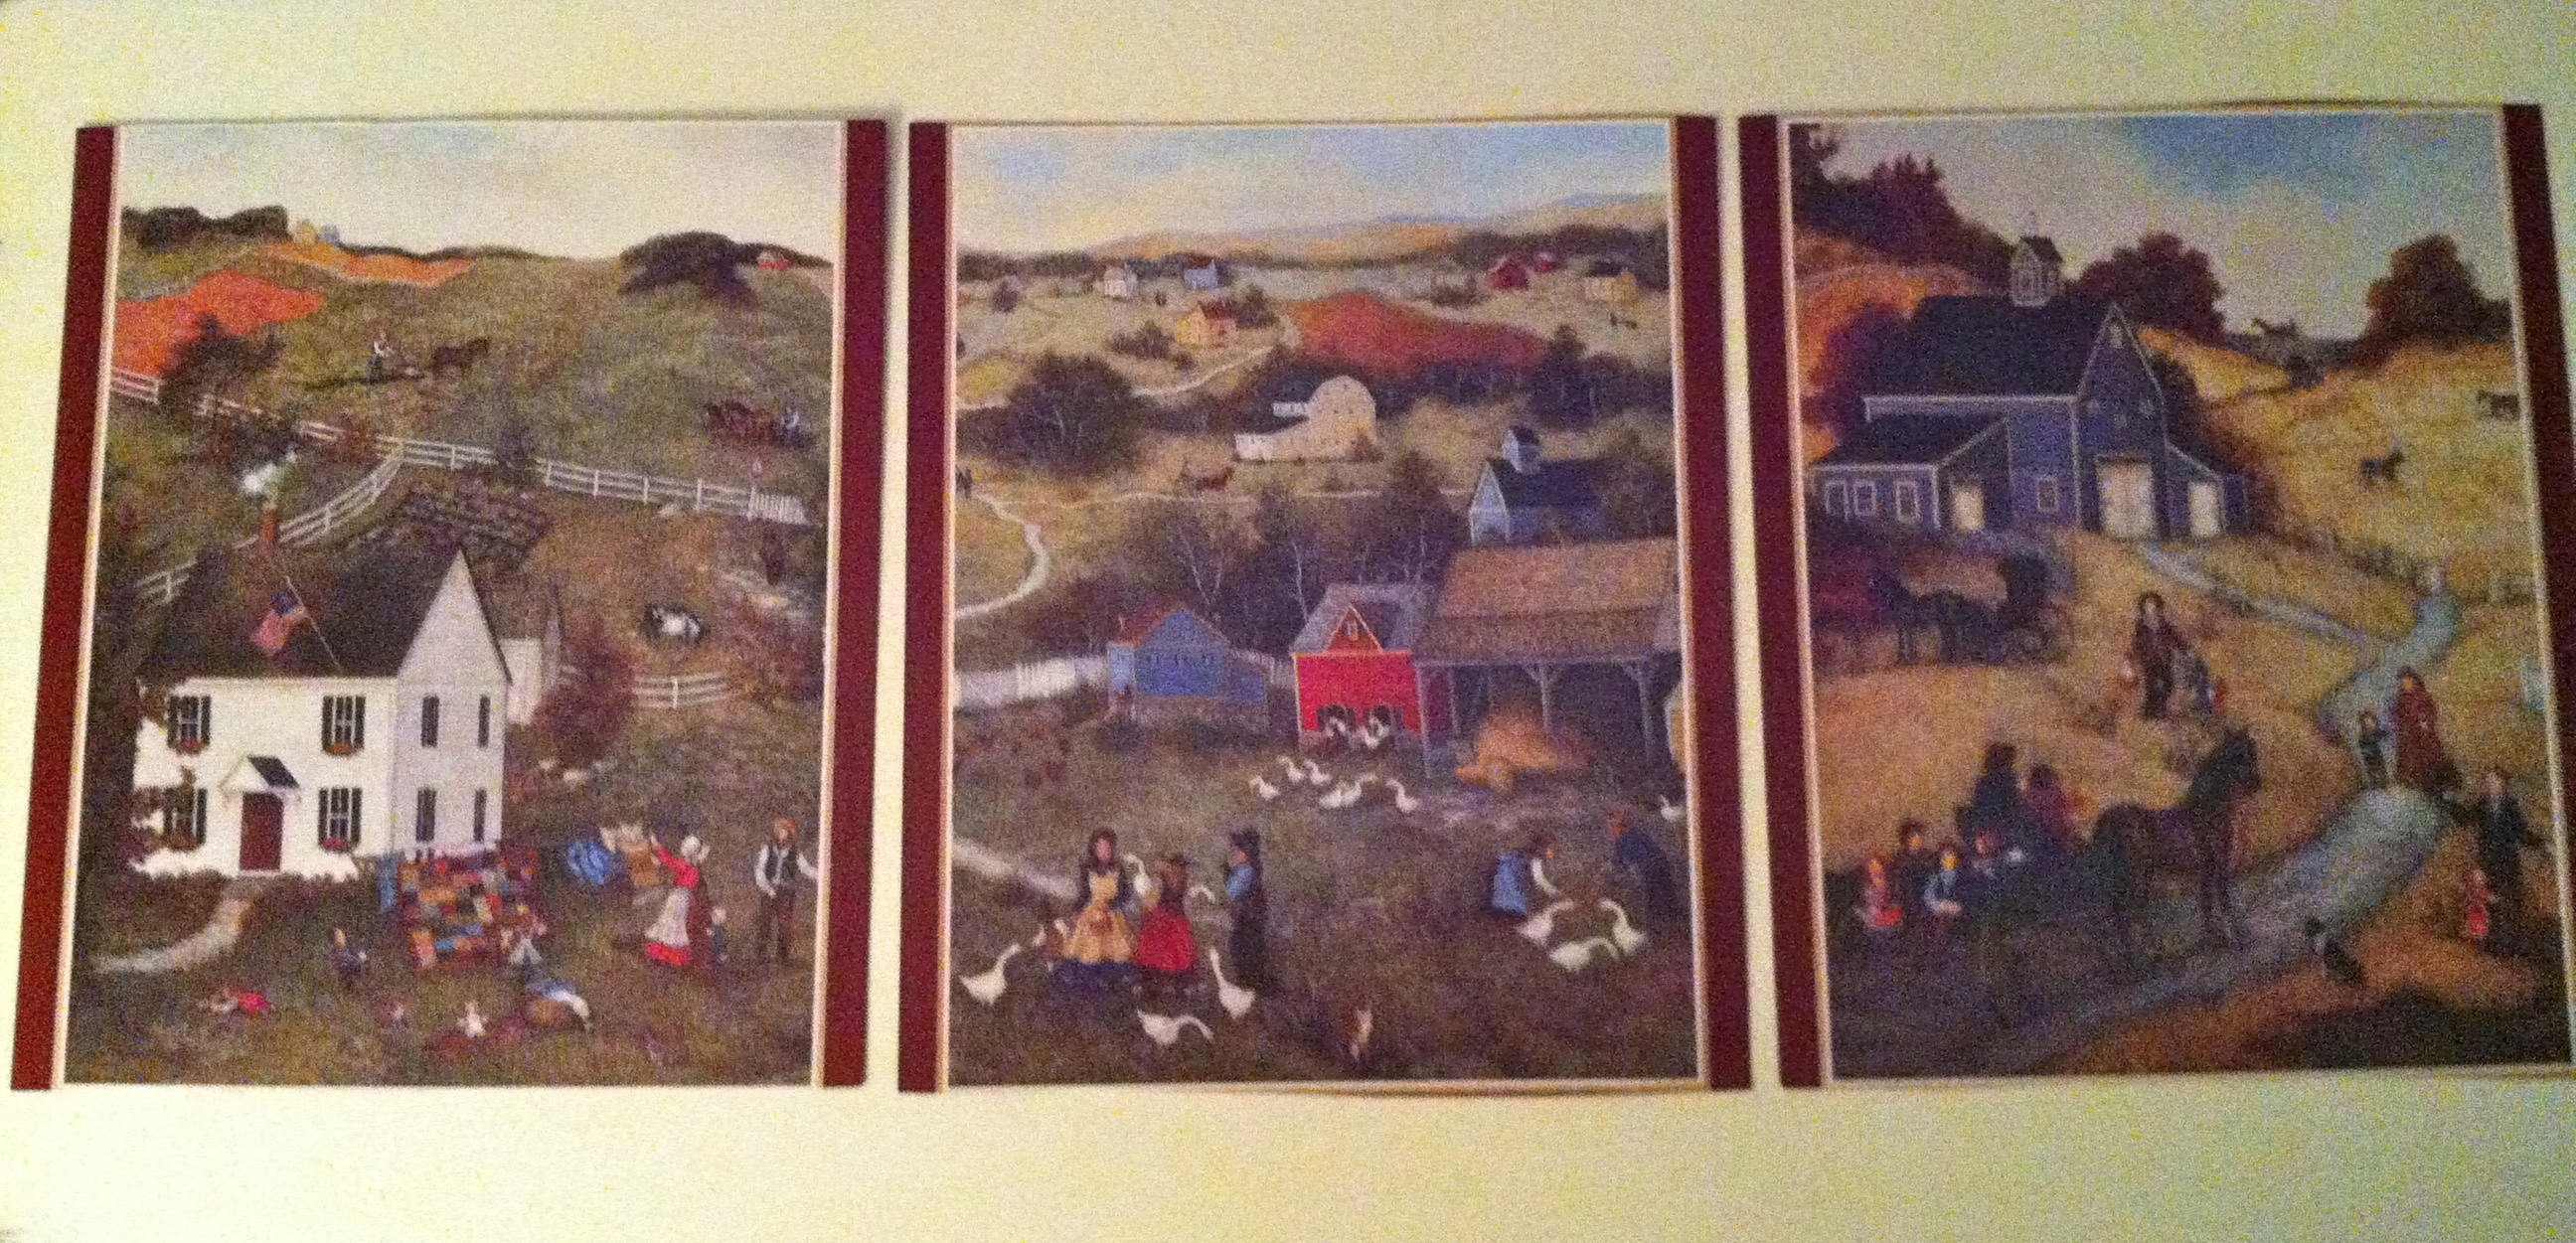 6 Prints Two Sided – Americana Primitive Art Prints/set Of Pertaining To Newest American Folk Art Framed Prints (View 2 of 15)